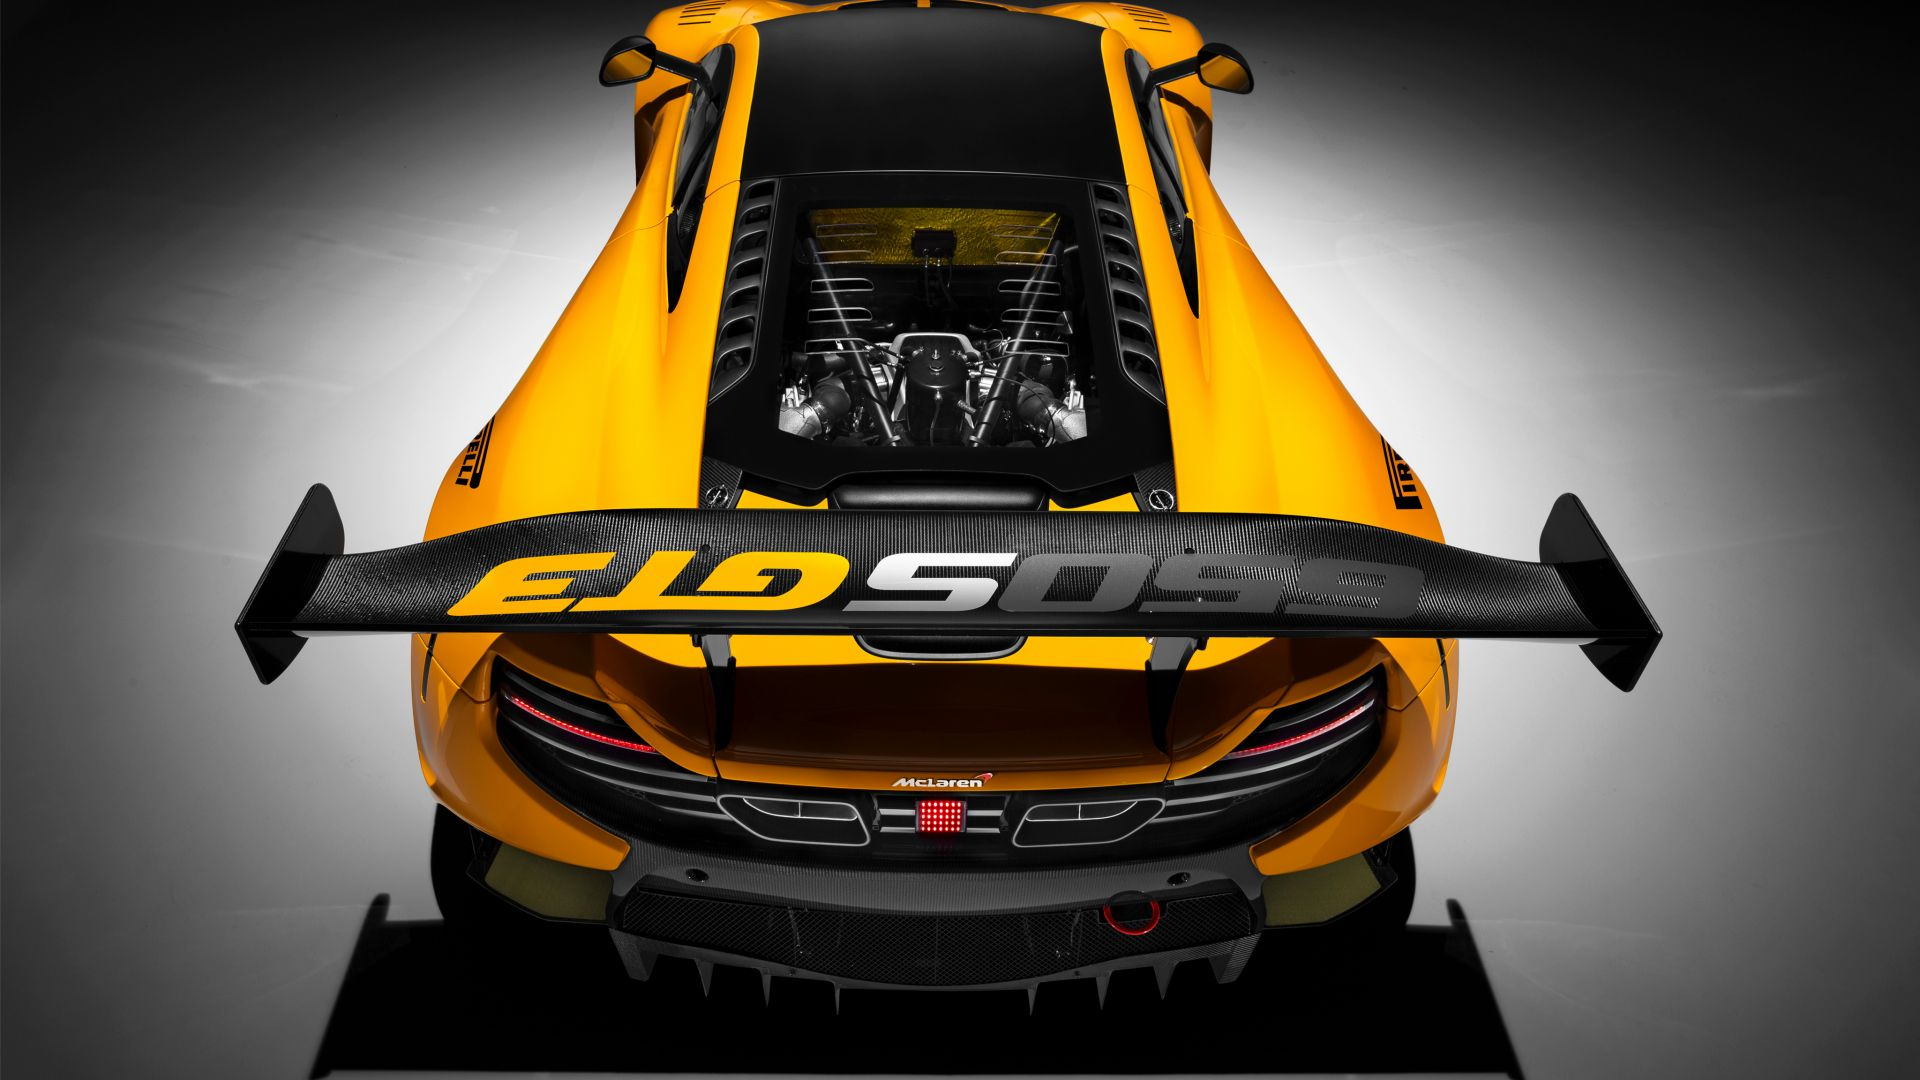 McLaren 650S GT3, Geneva International Motor Show 2016, sports car, yellow (horizontal)